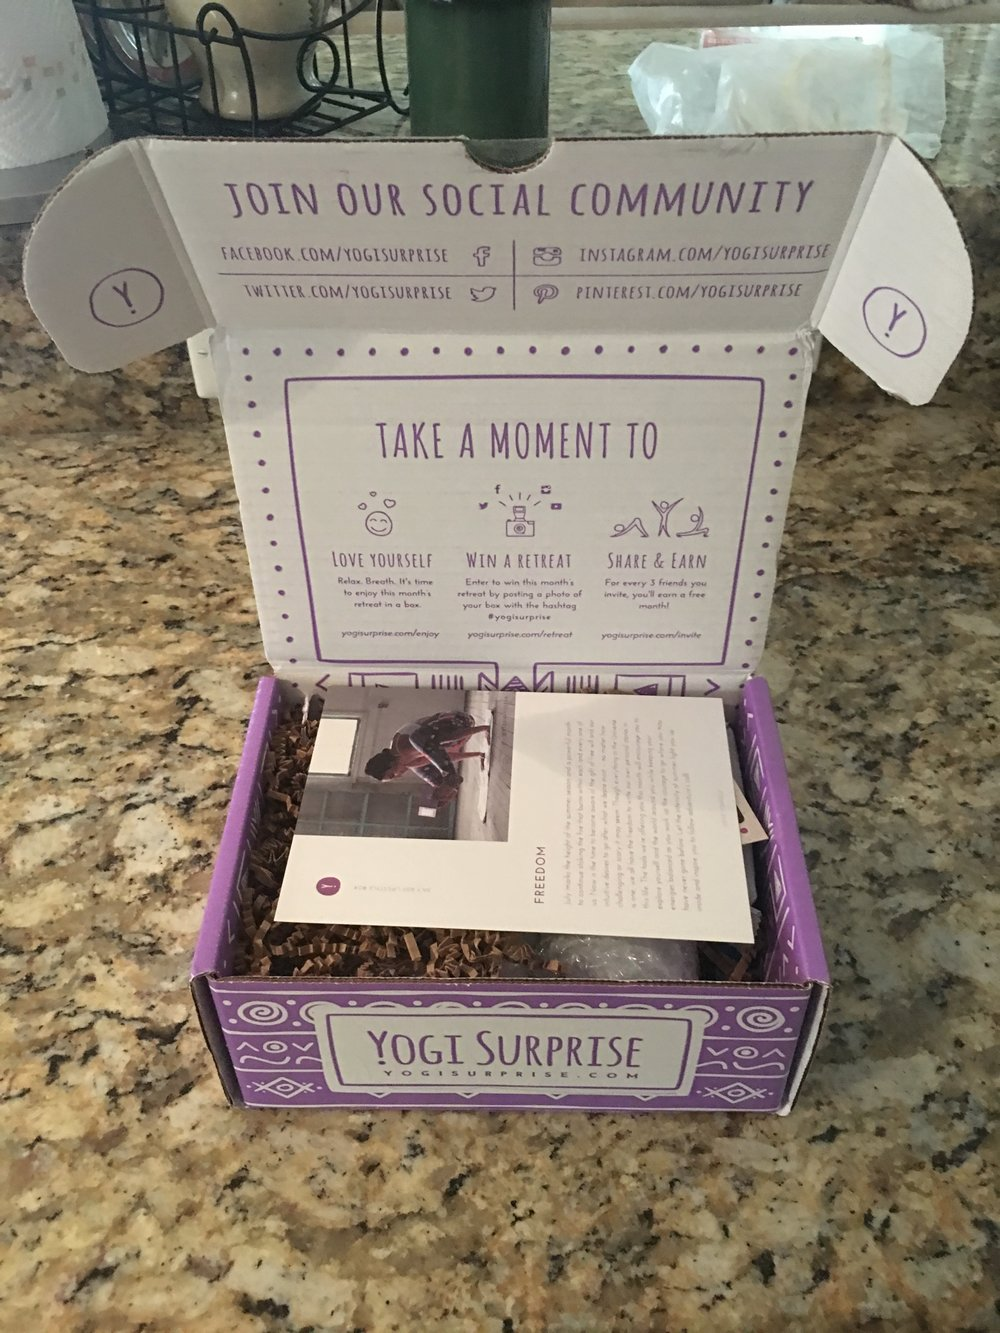 Inside the Yogi Surprise Lifestyle box.